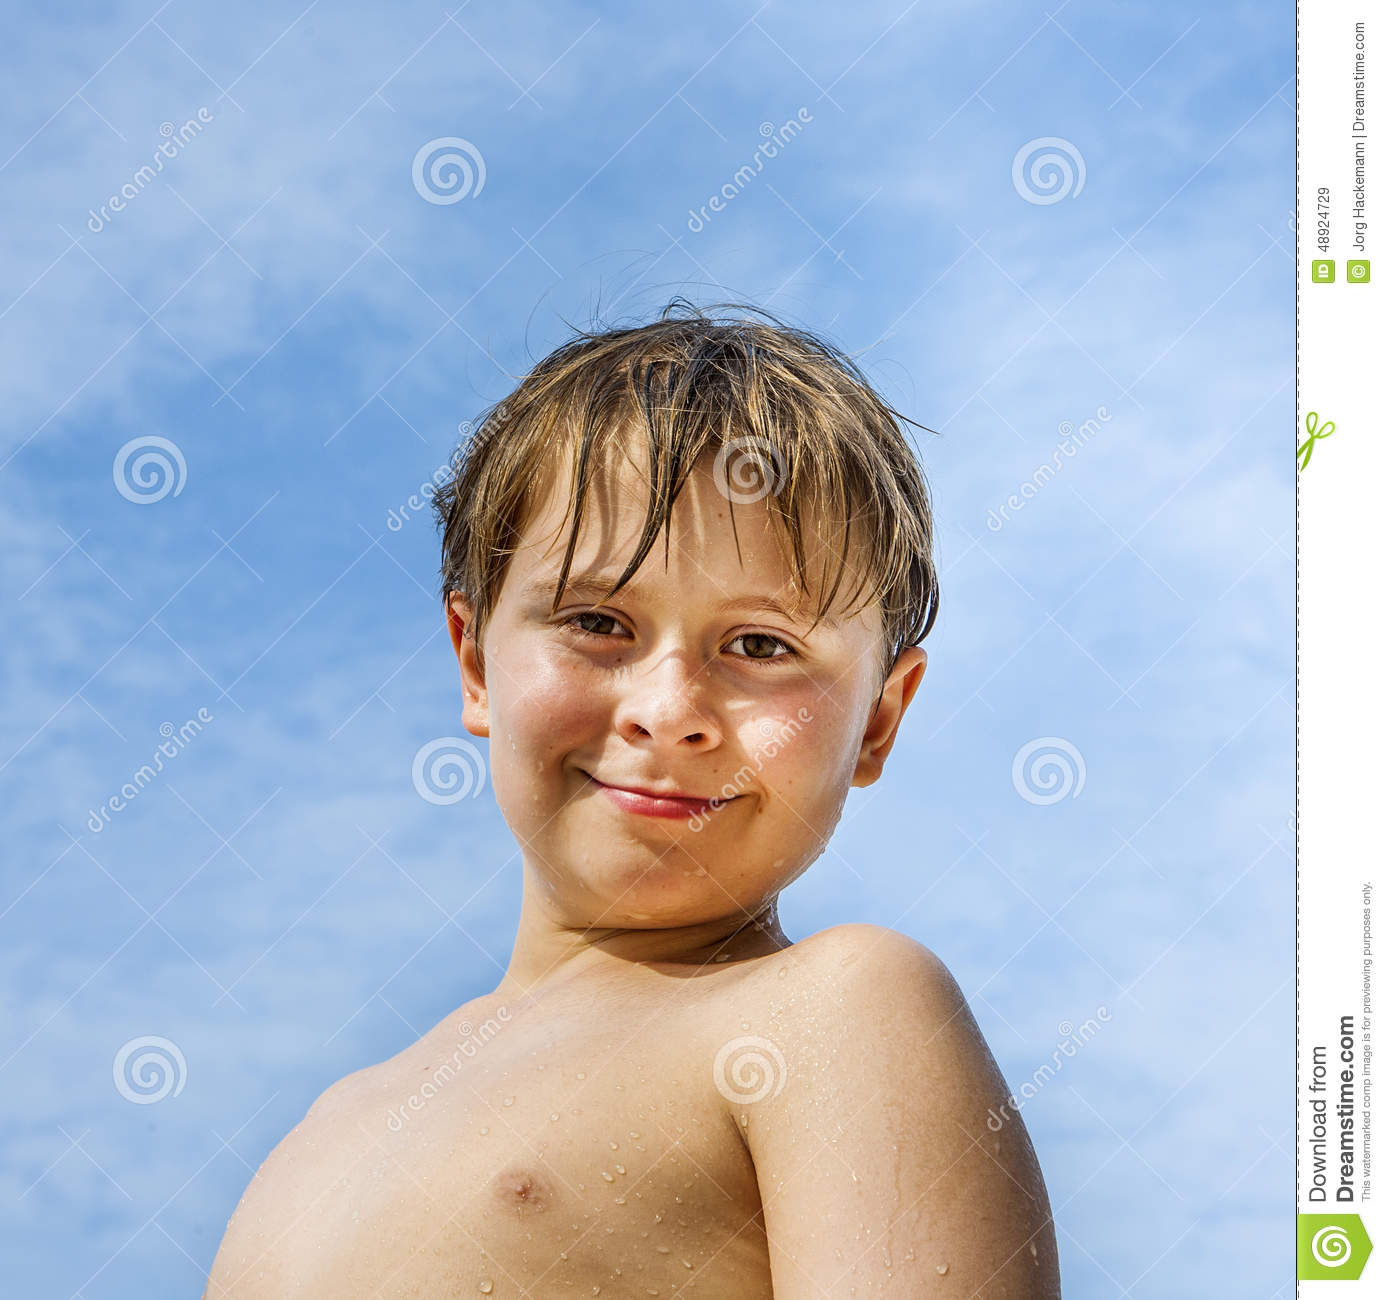 Happy Young Boy With Brown Hair And Eyes At The Beach